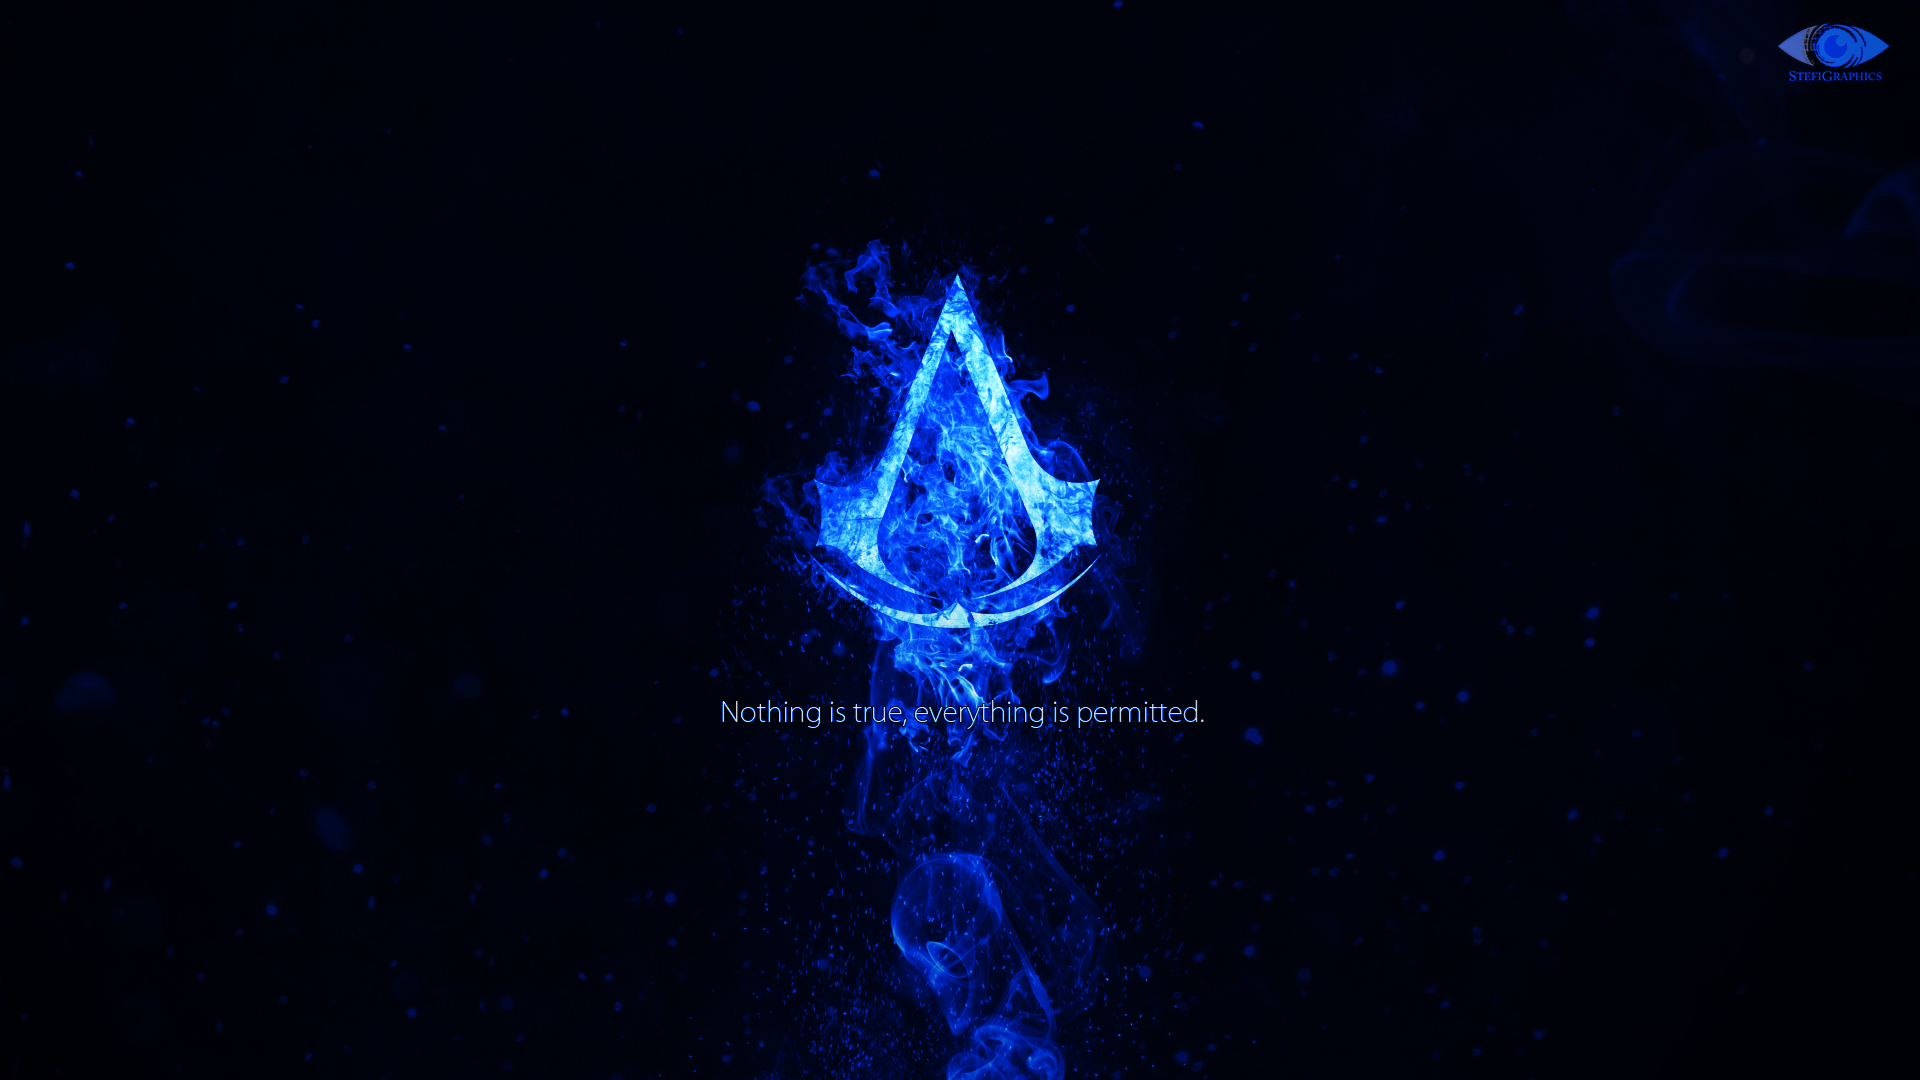 Assassin S Creed Logo Wallpapers Top Free Assassin S Creed Logo